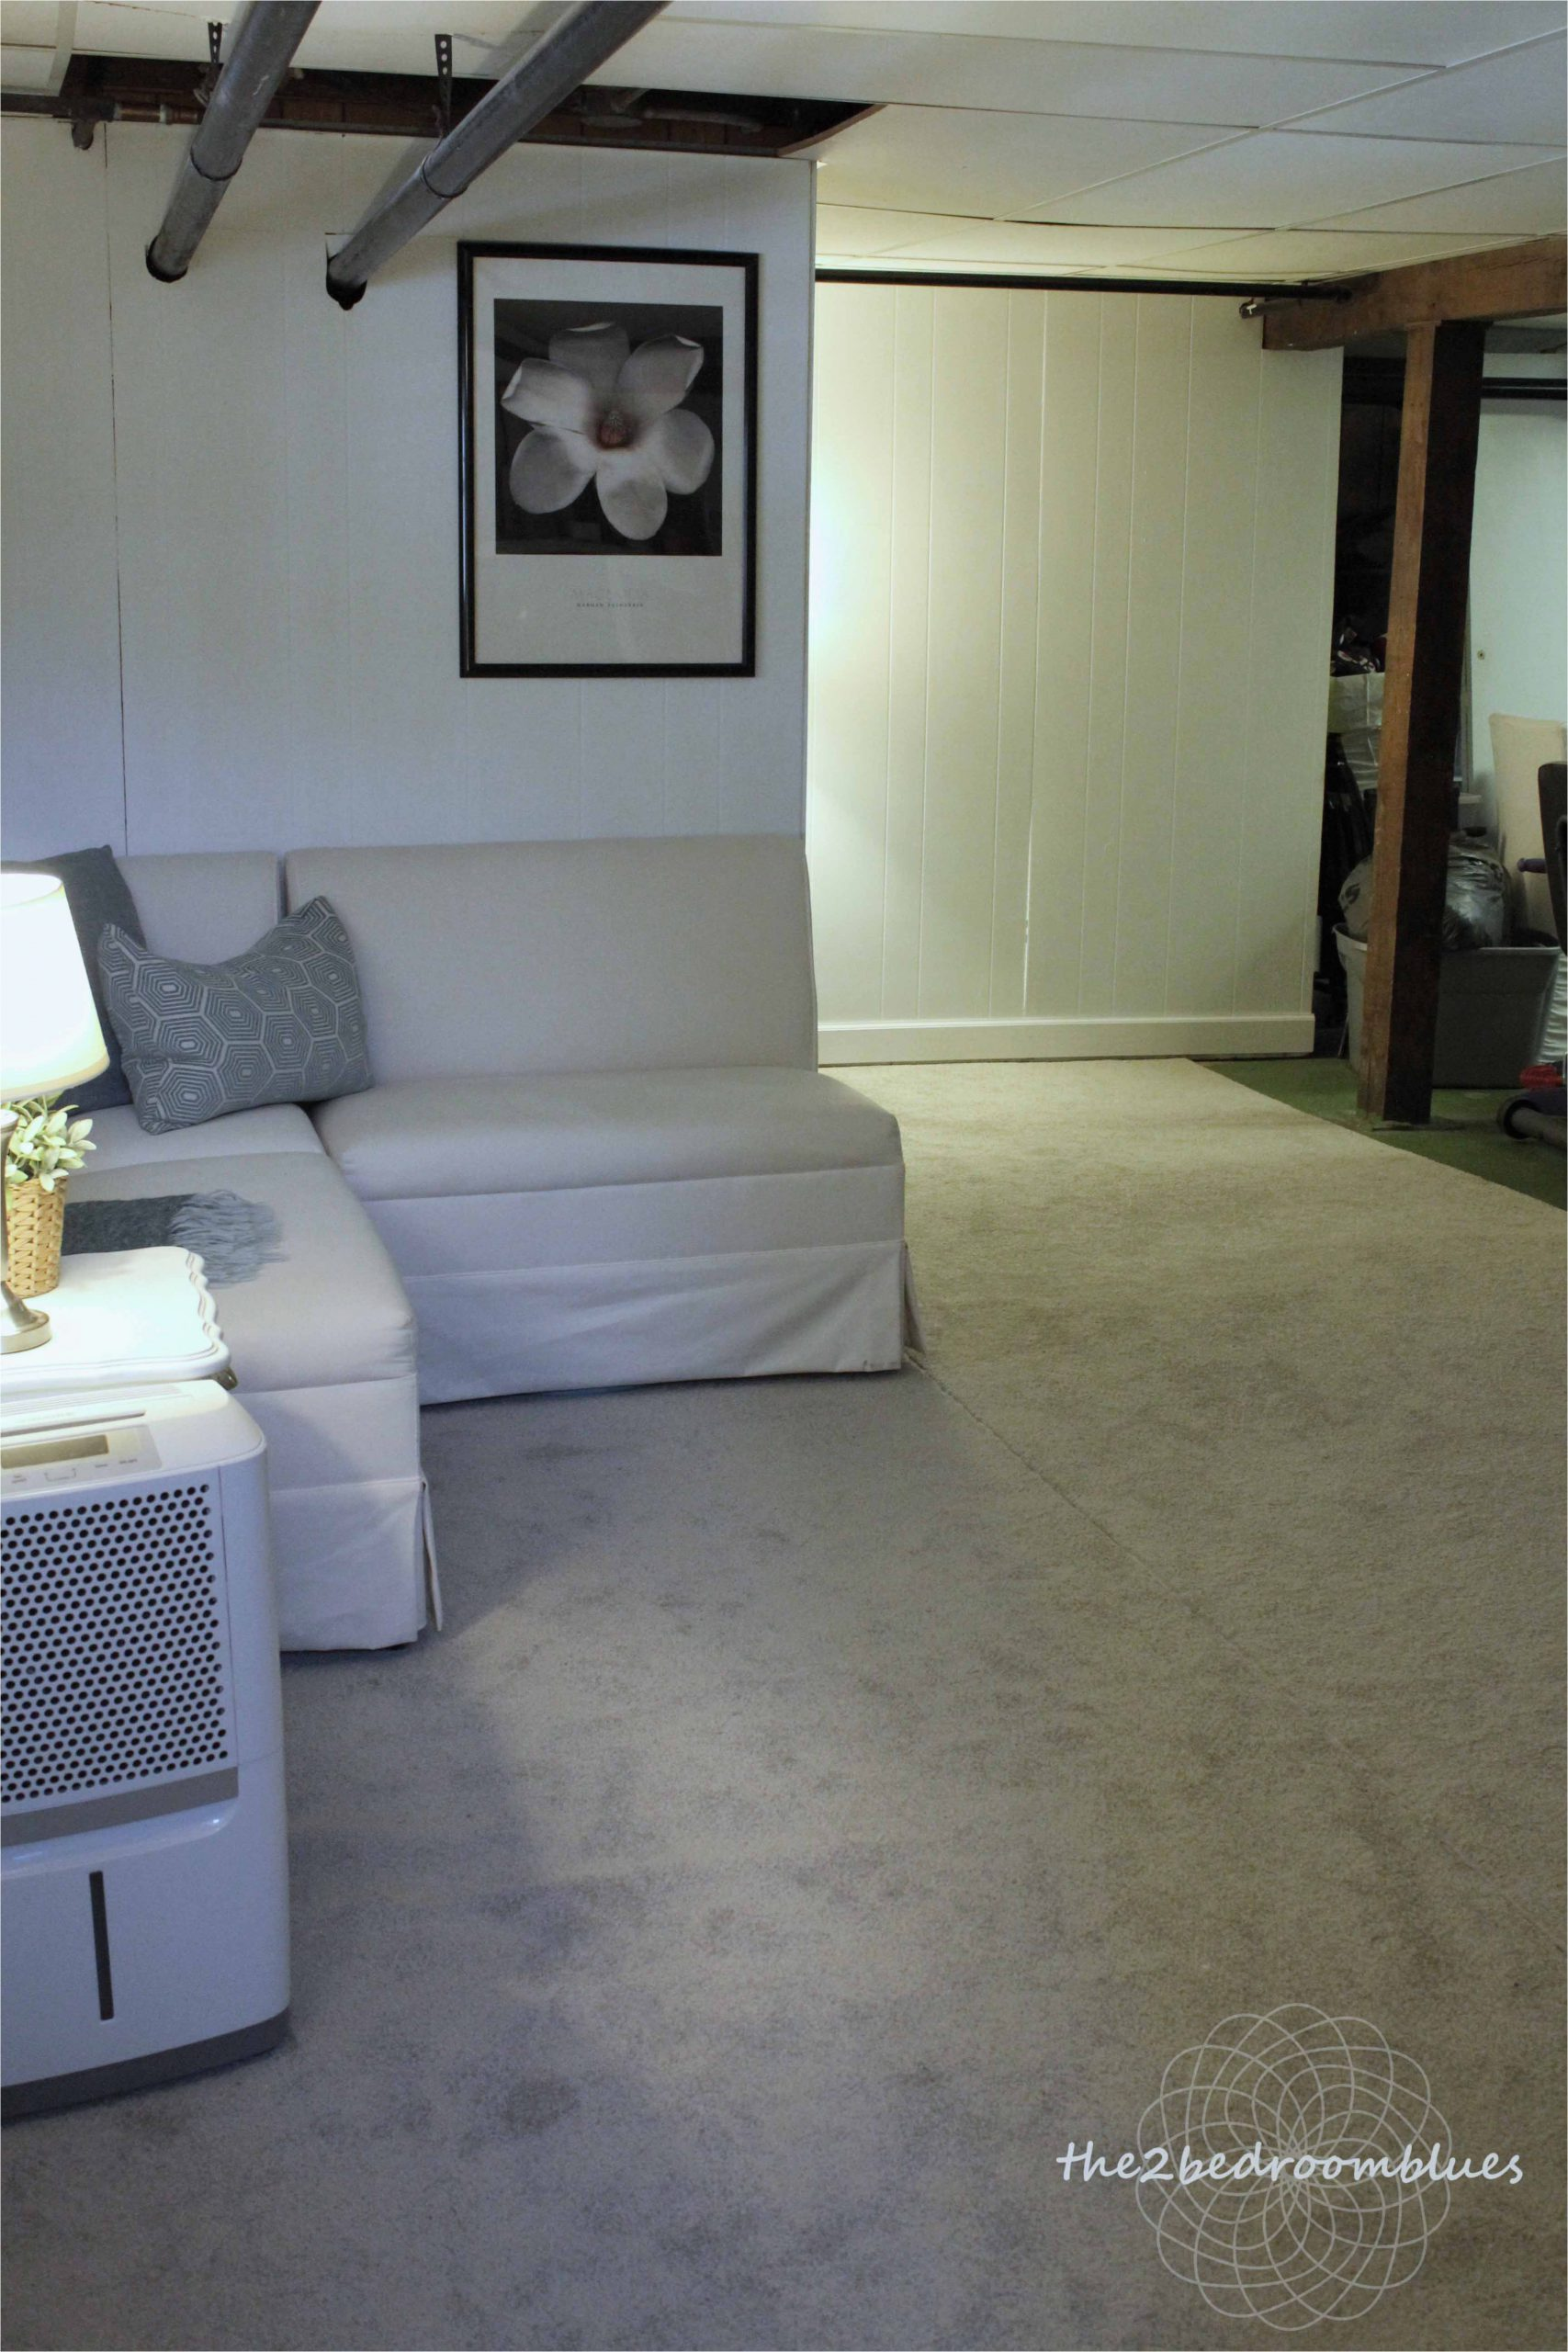 Large area Rugs for Basement Basement Flooring solution area Rugs Made From Carpet